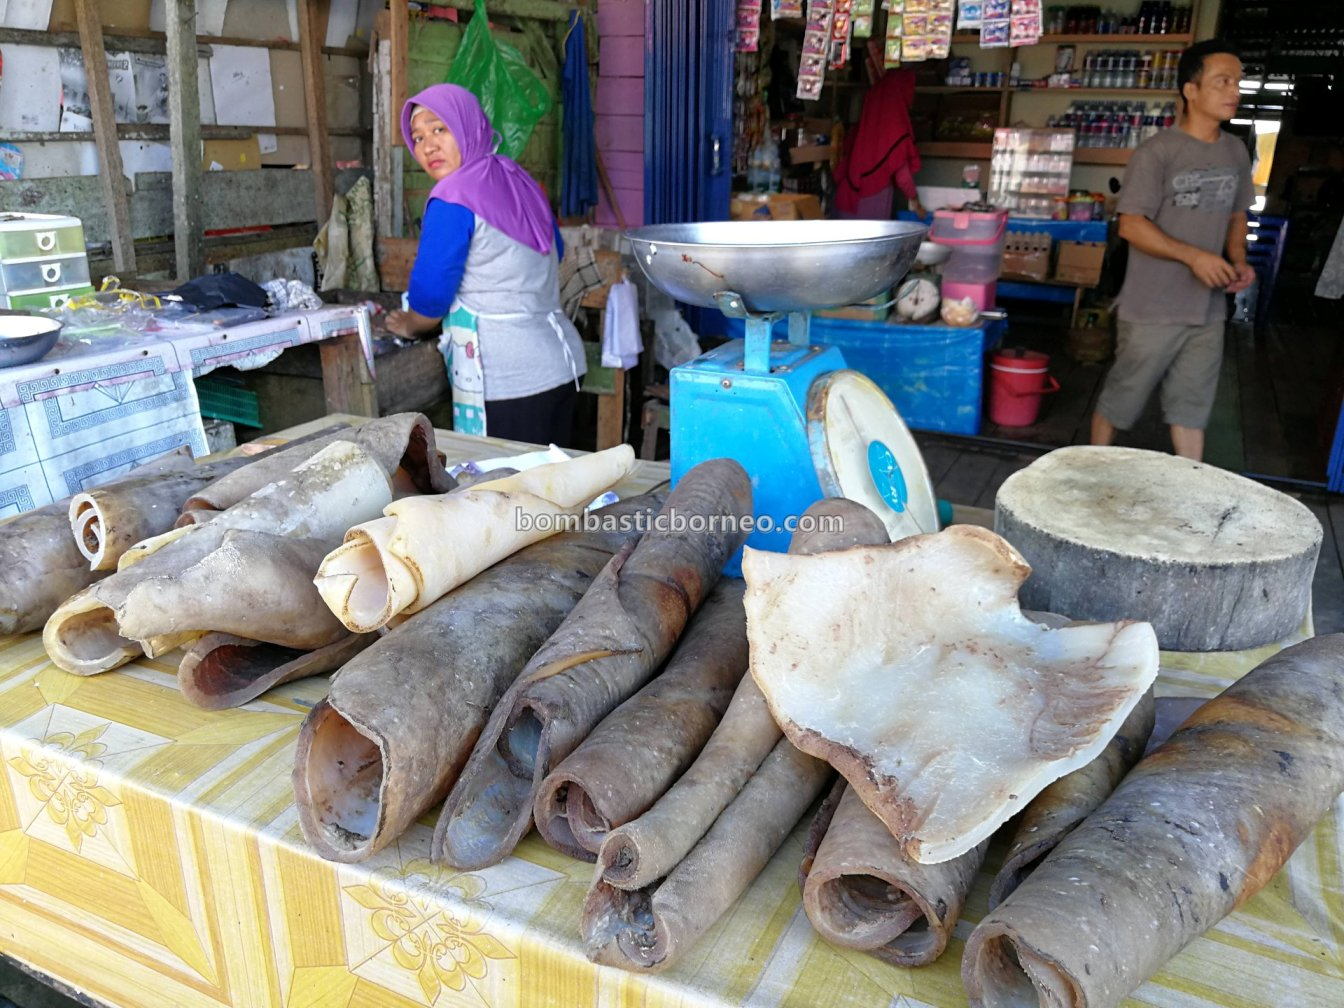 Pasar Flamboyan, Sungai, Kapuas river, fish, Gawai Dayak, Ethnic, Kalimantan Barat, Obyek wisata, Tourism, travel guide, Trans Border, stingray, 婆罗洲游踪, 西加里曼丹海鲜市场